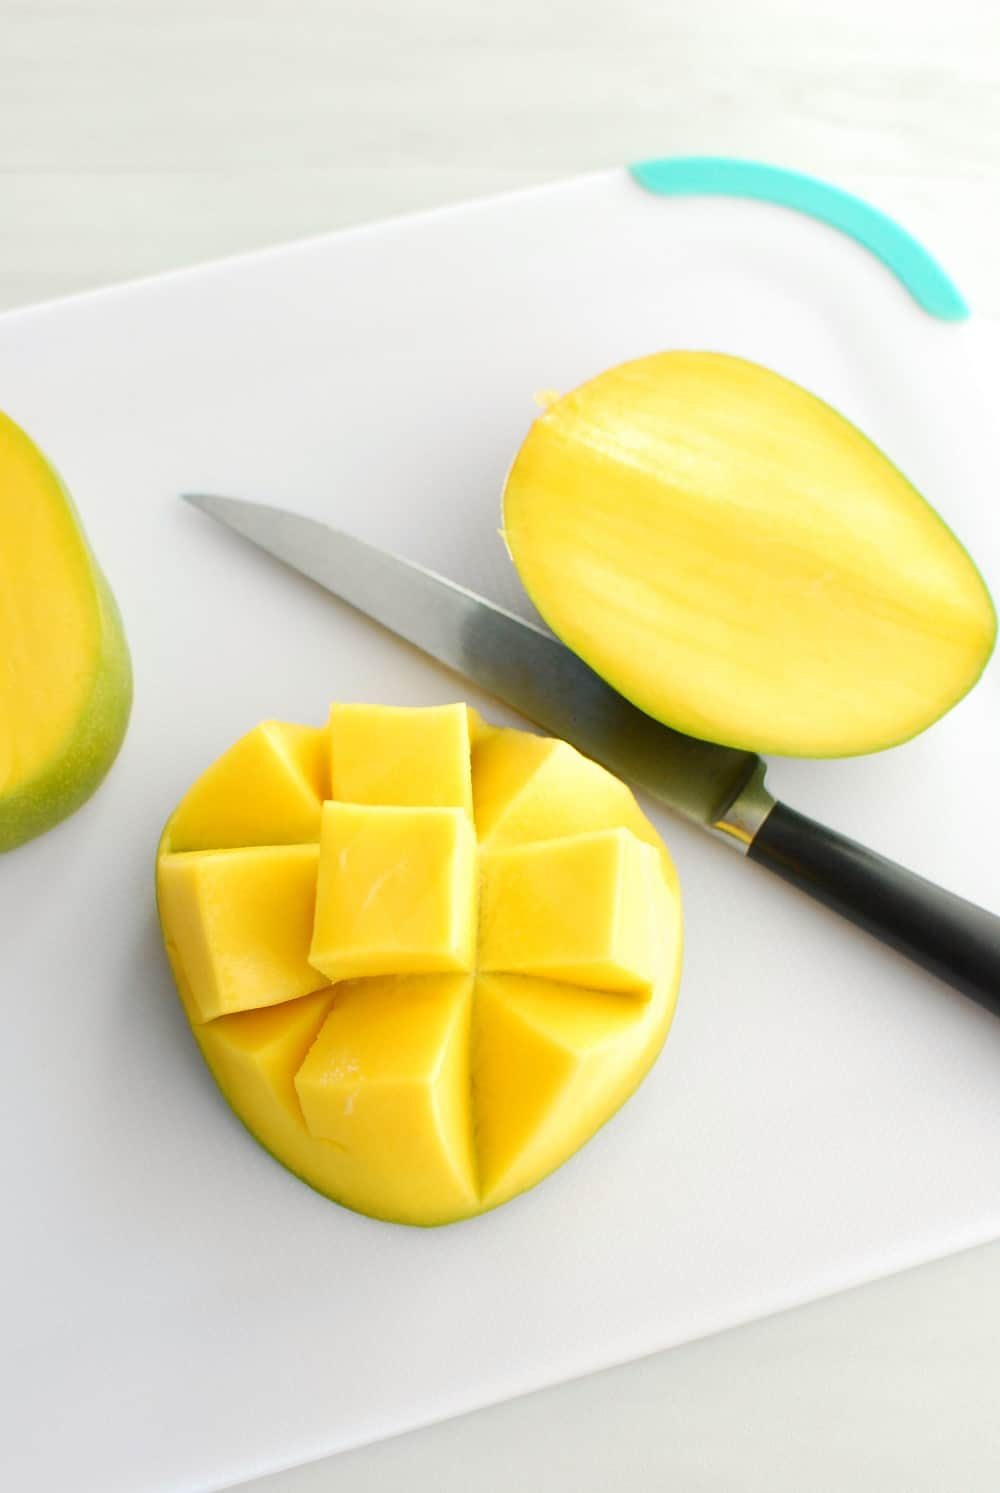 A mango cut in a checkerboard pattern